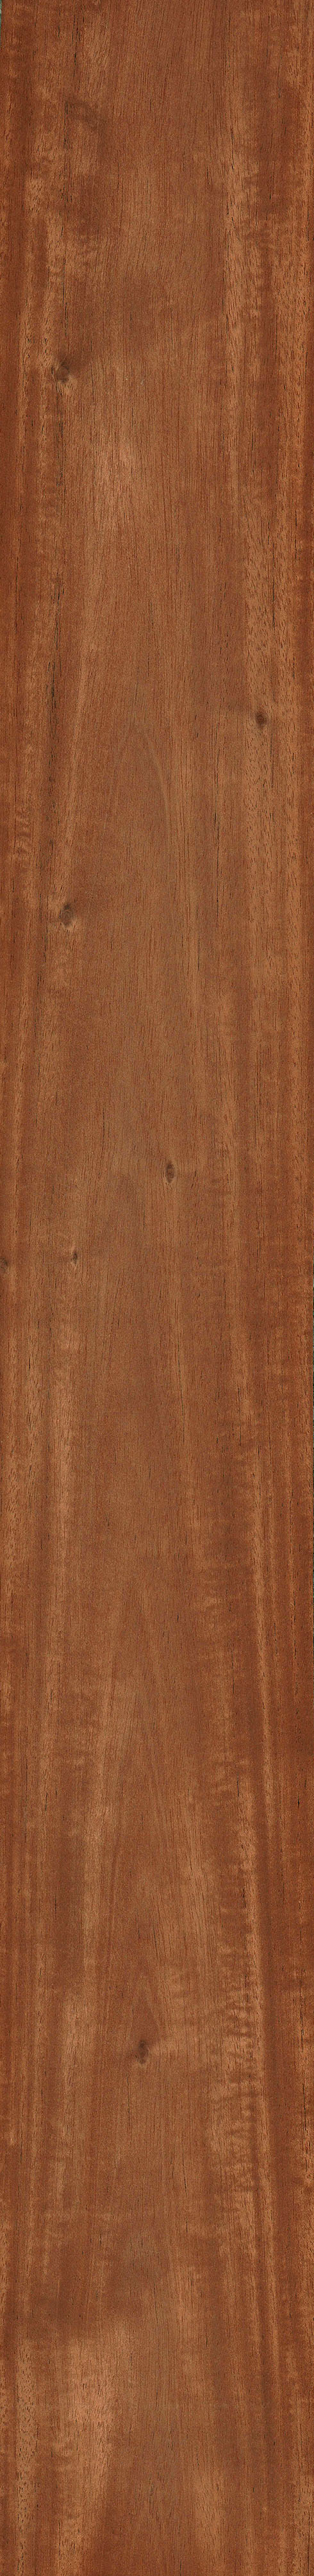 honduran mahogany the wood